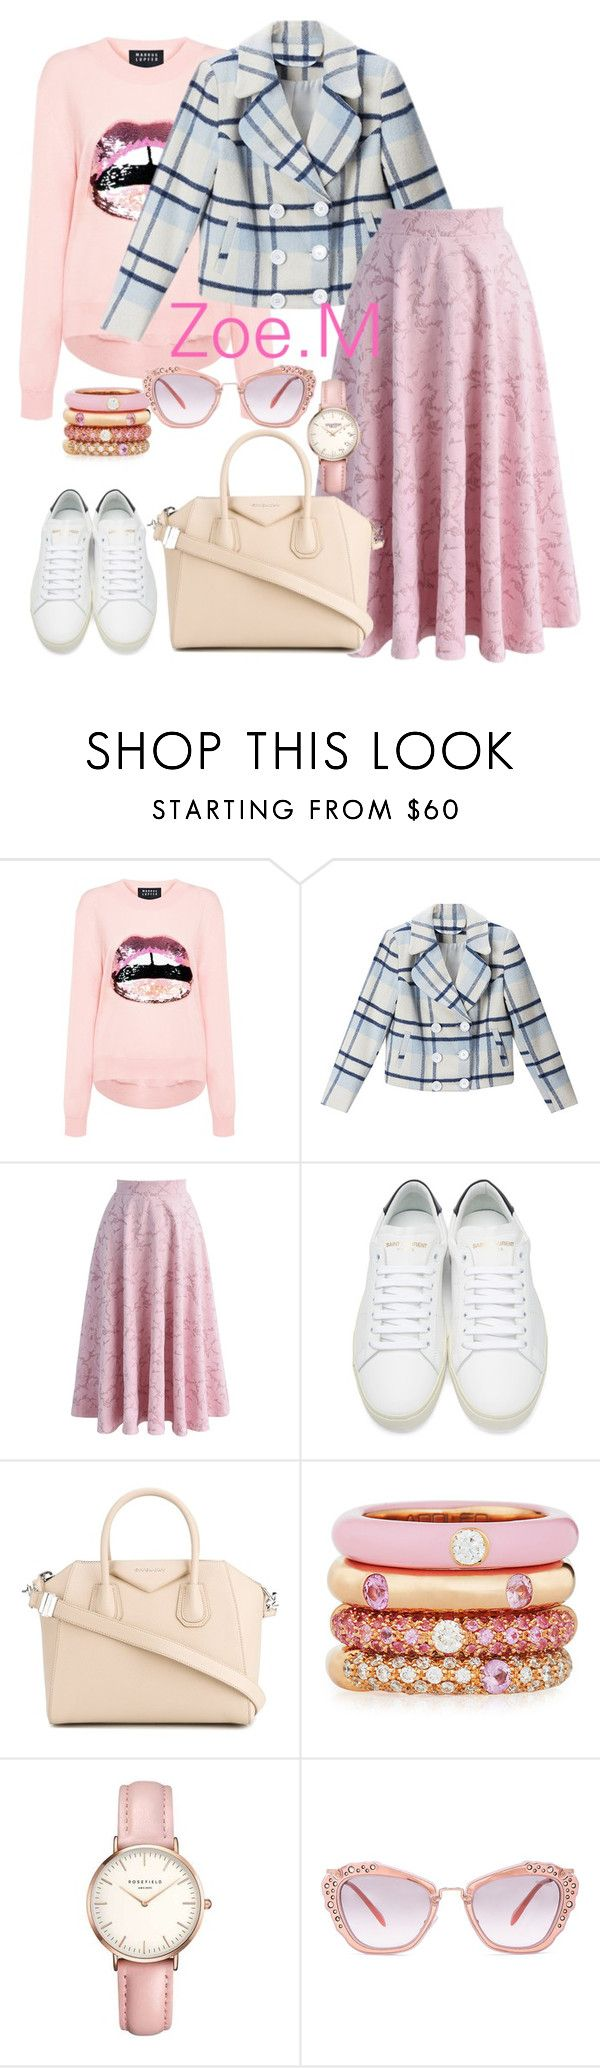 """Untitled #1223"" by zoemyint ❤ liked on Polyvore featuring Markus Lupfer, BLUE NOTCH, Chicwish, Yves Saint Laurent, Givenchy, Adolfo Courrier, Topshop and Miu Miu"